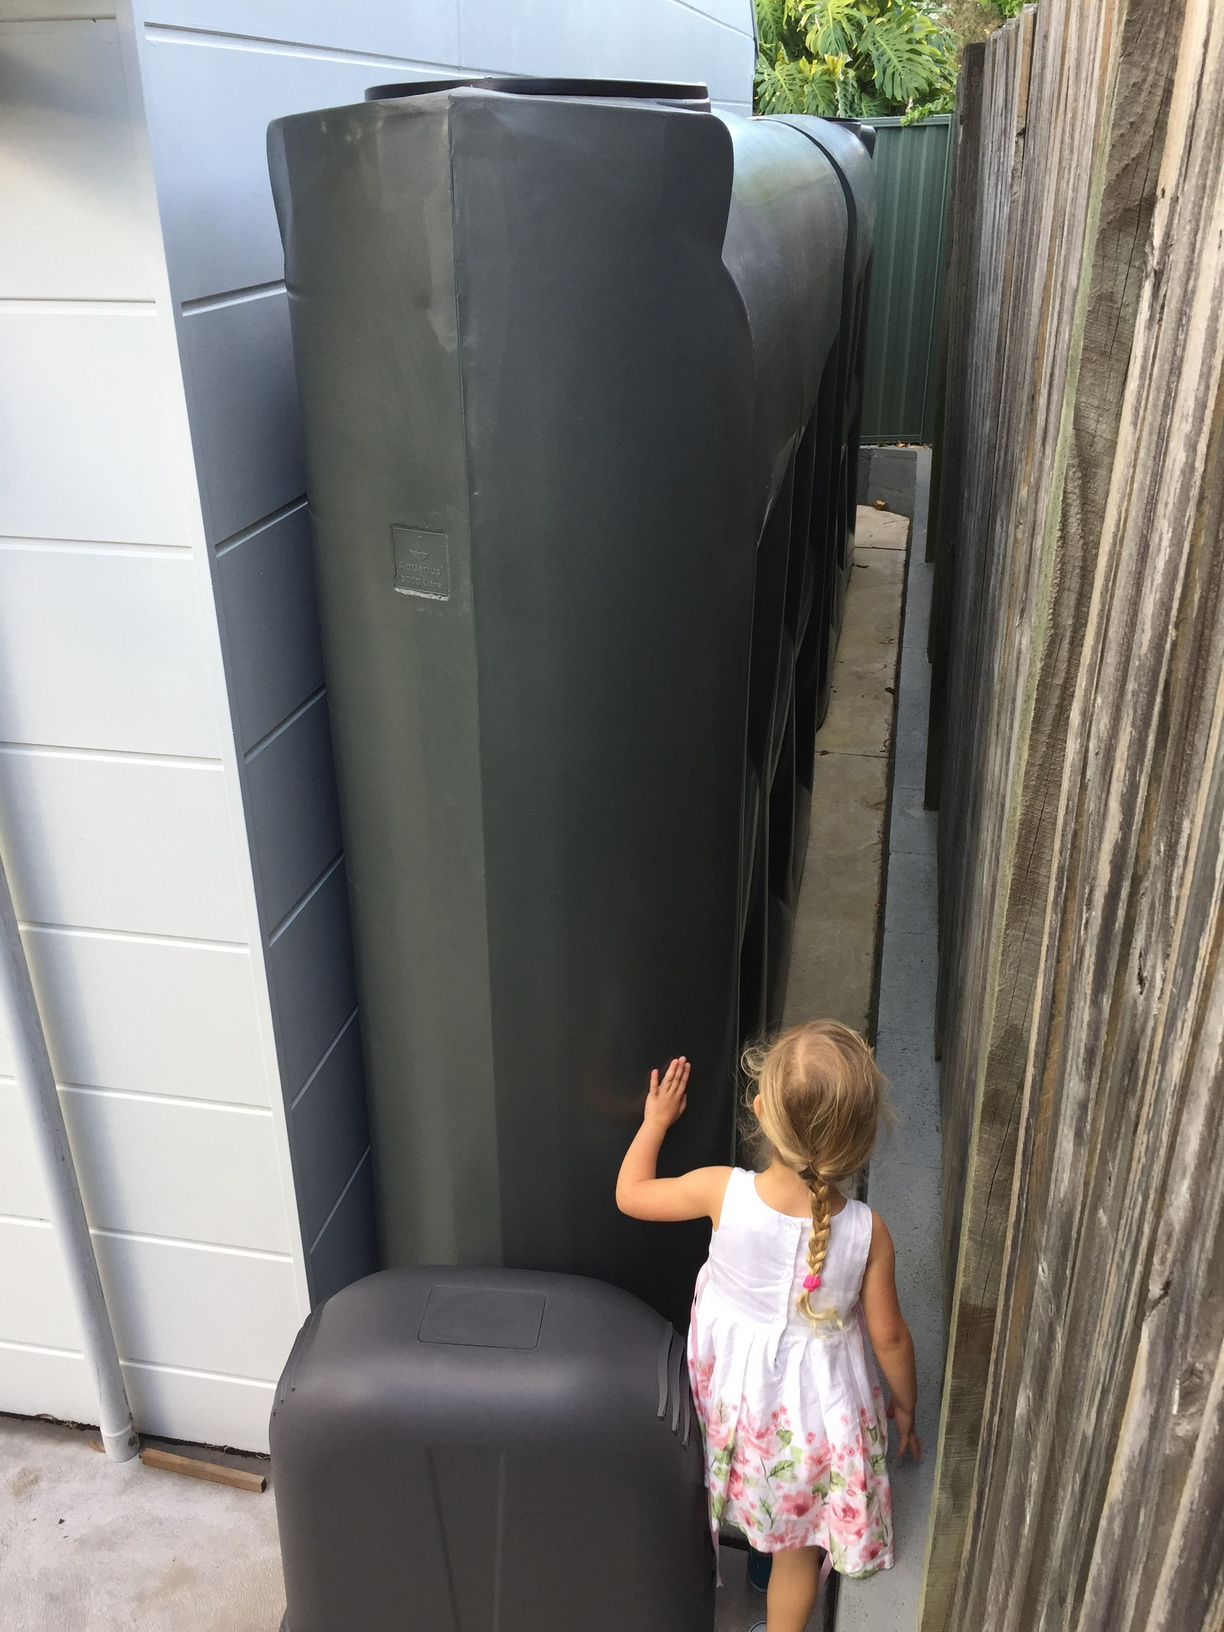 My daughter inspecting the location of the tanks and pump enclosure